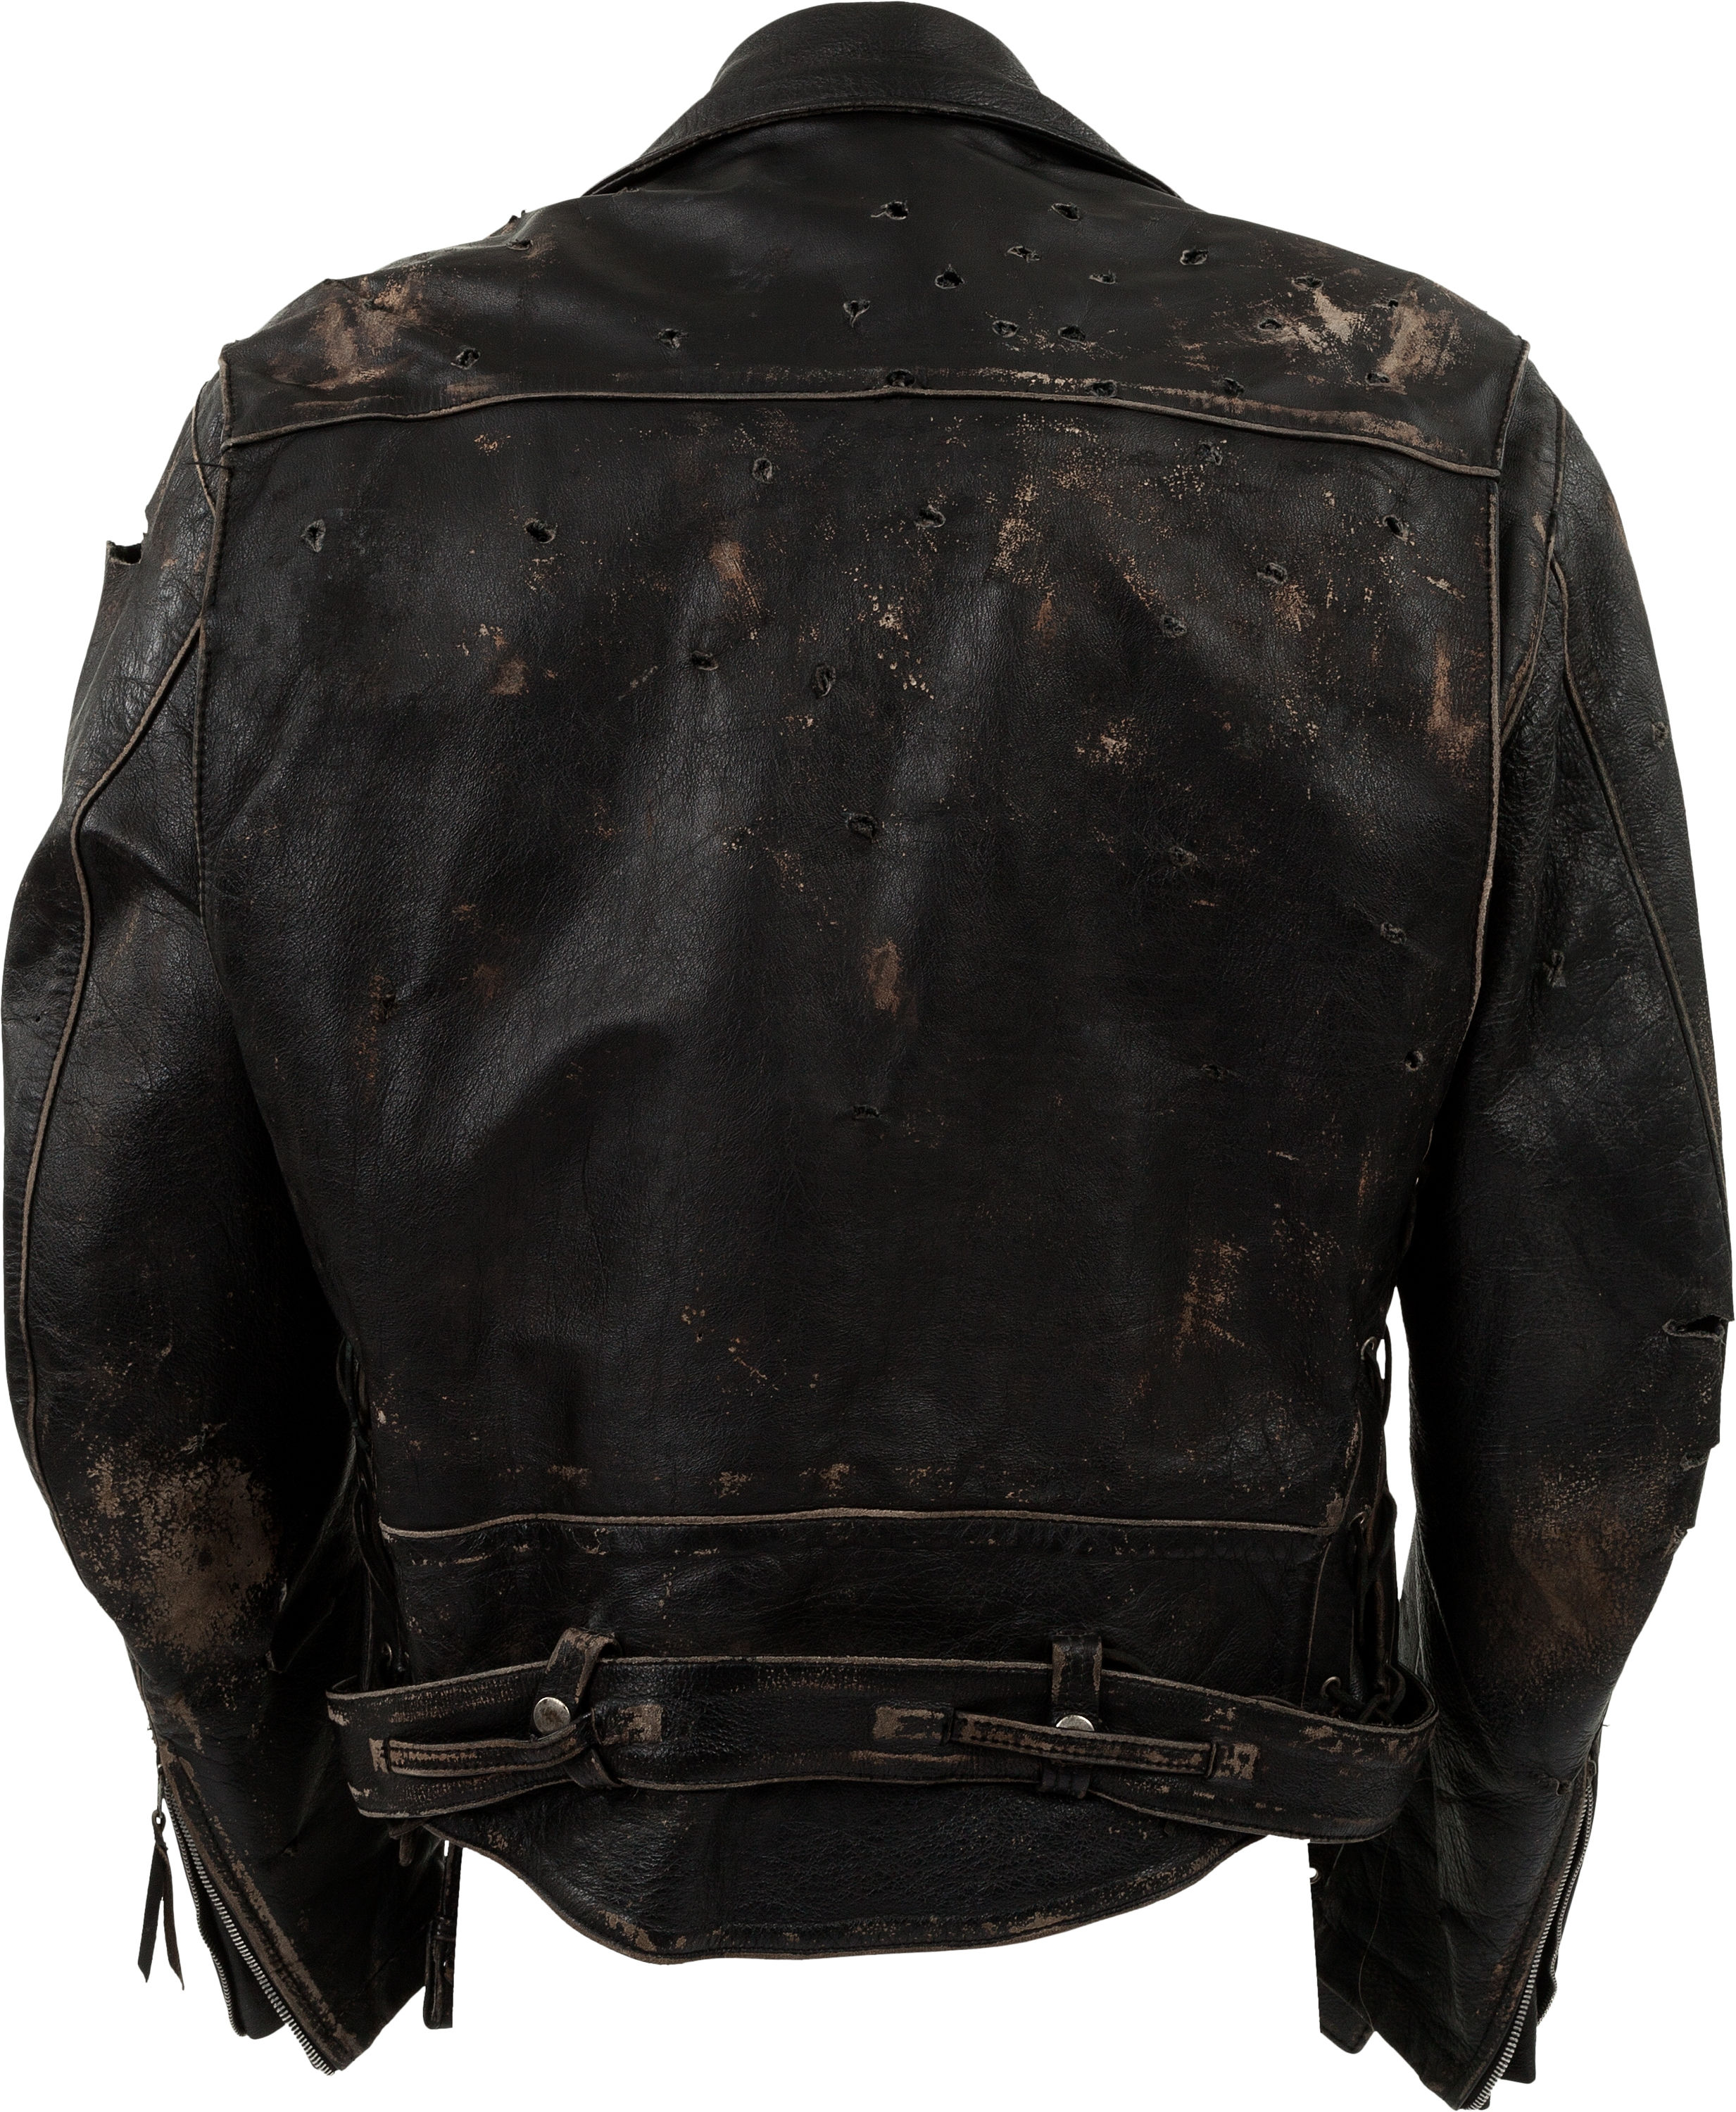 Leather jacket damage -  Leather Biker Jacket In Every Scene Of The Film There Would Have Been Numerous Versions Of It For Him To Wear During Production Especially Because It